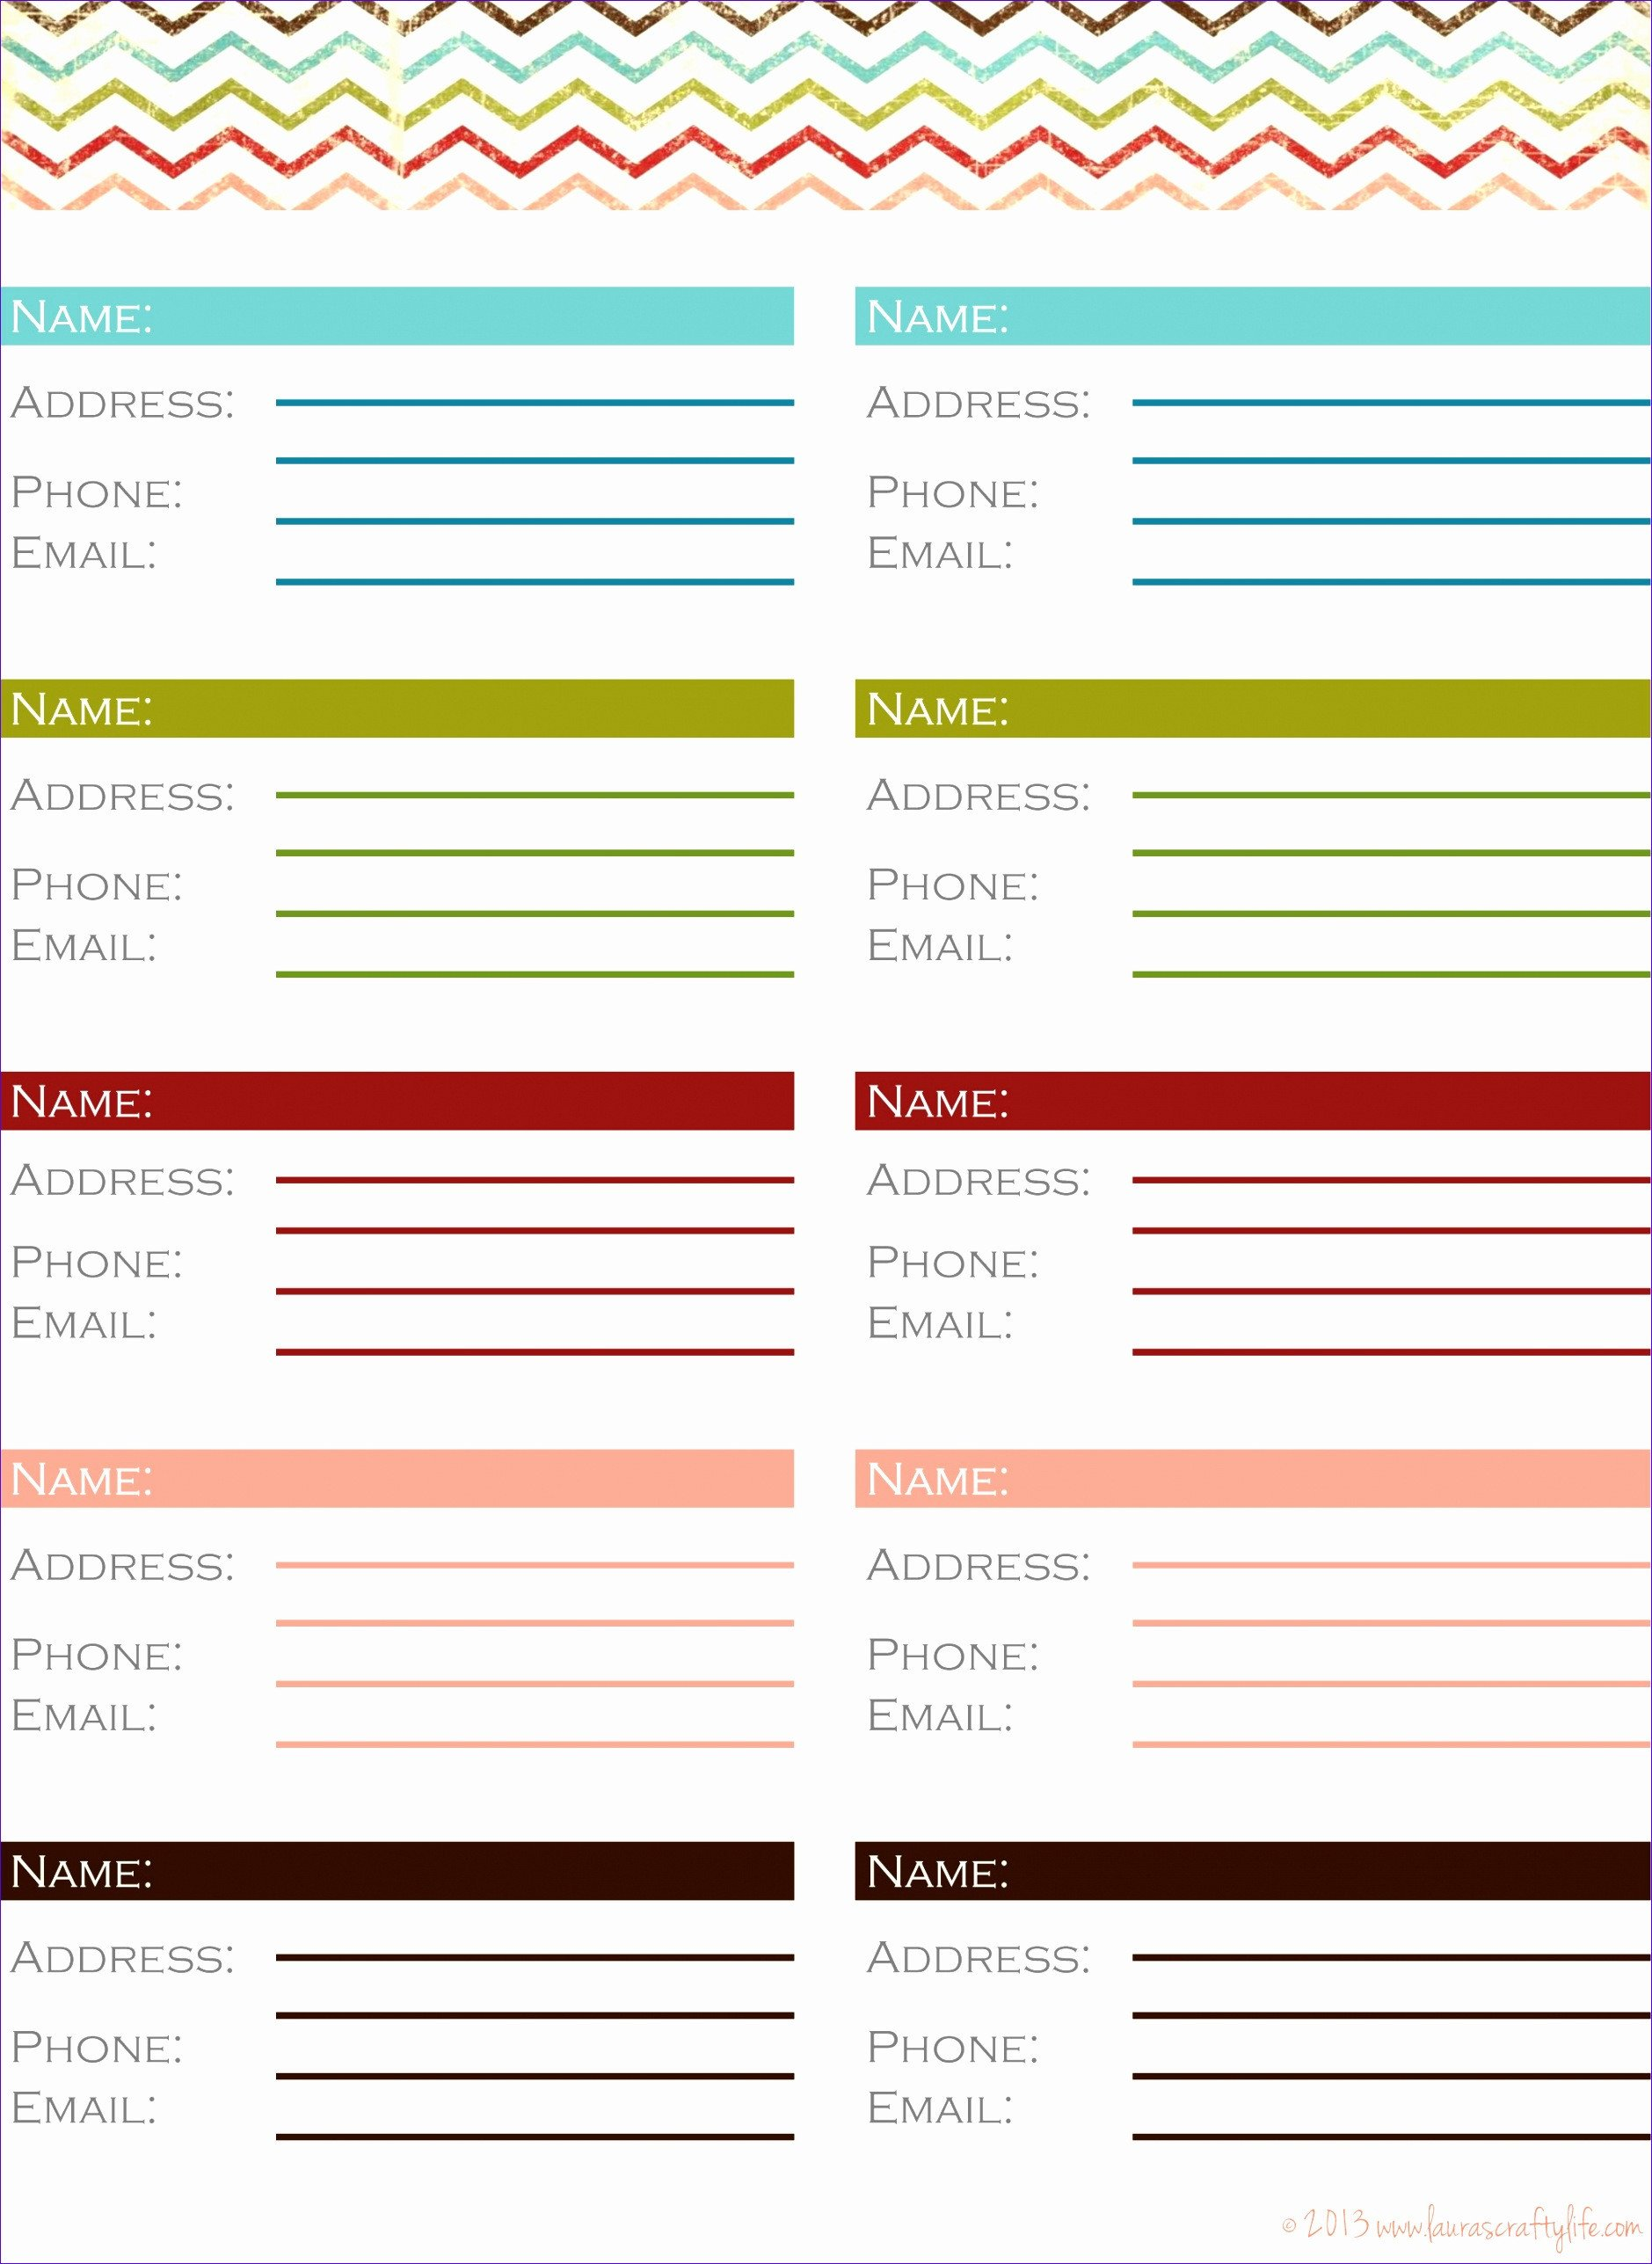 Address Book Template Excel 10 Phone Book Excel Template Exceltemplates Exceltemplates